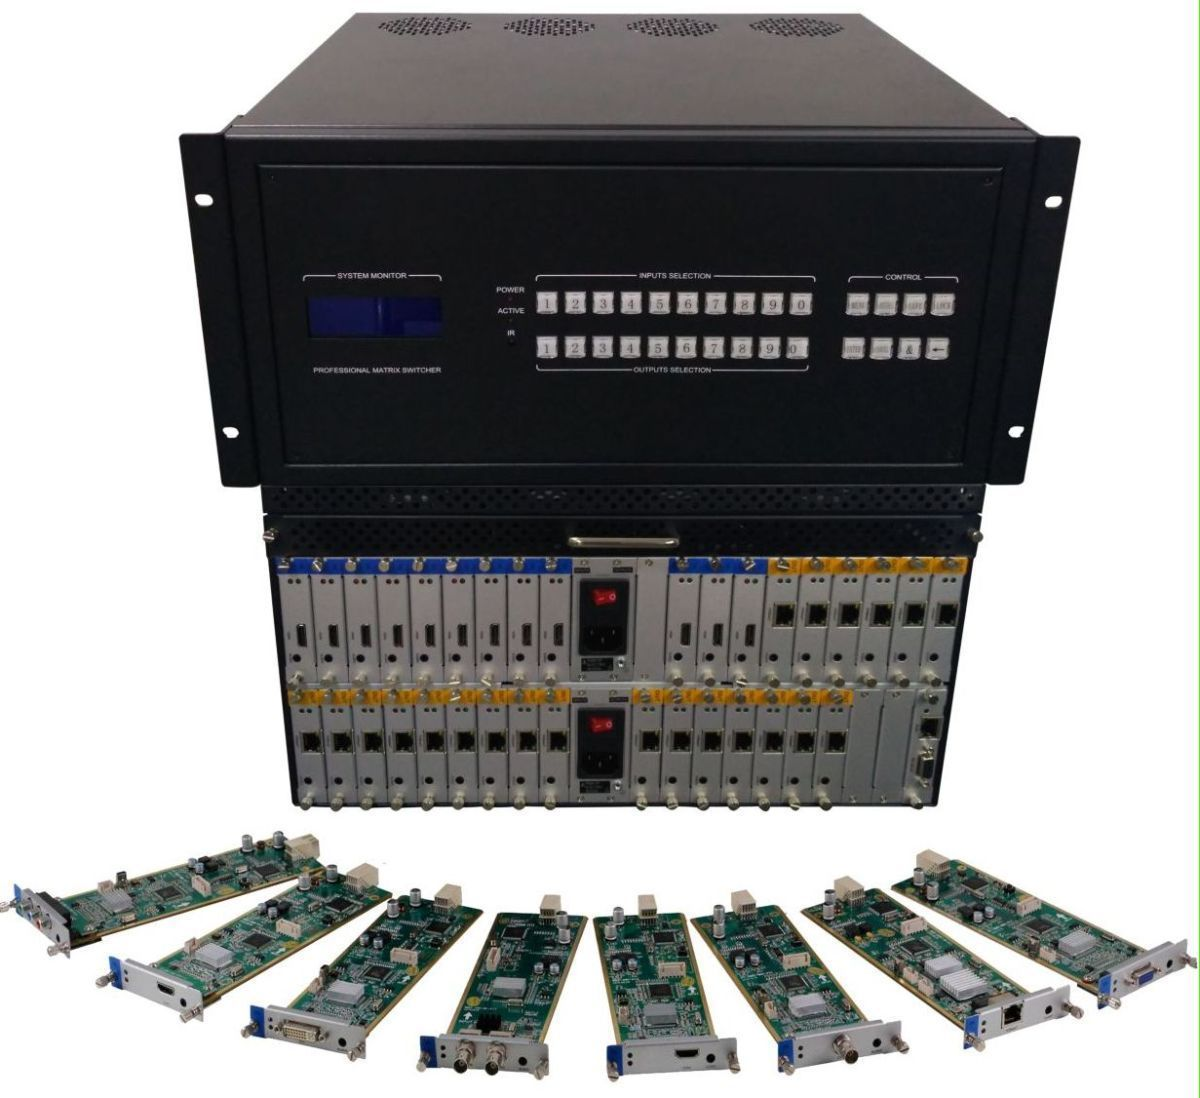 4x24 HDMI Matrix Switcher w/Video Wall Processor, 100ms Switching, Scaling & Separate Audio